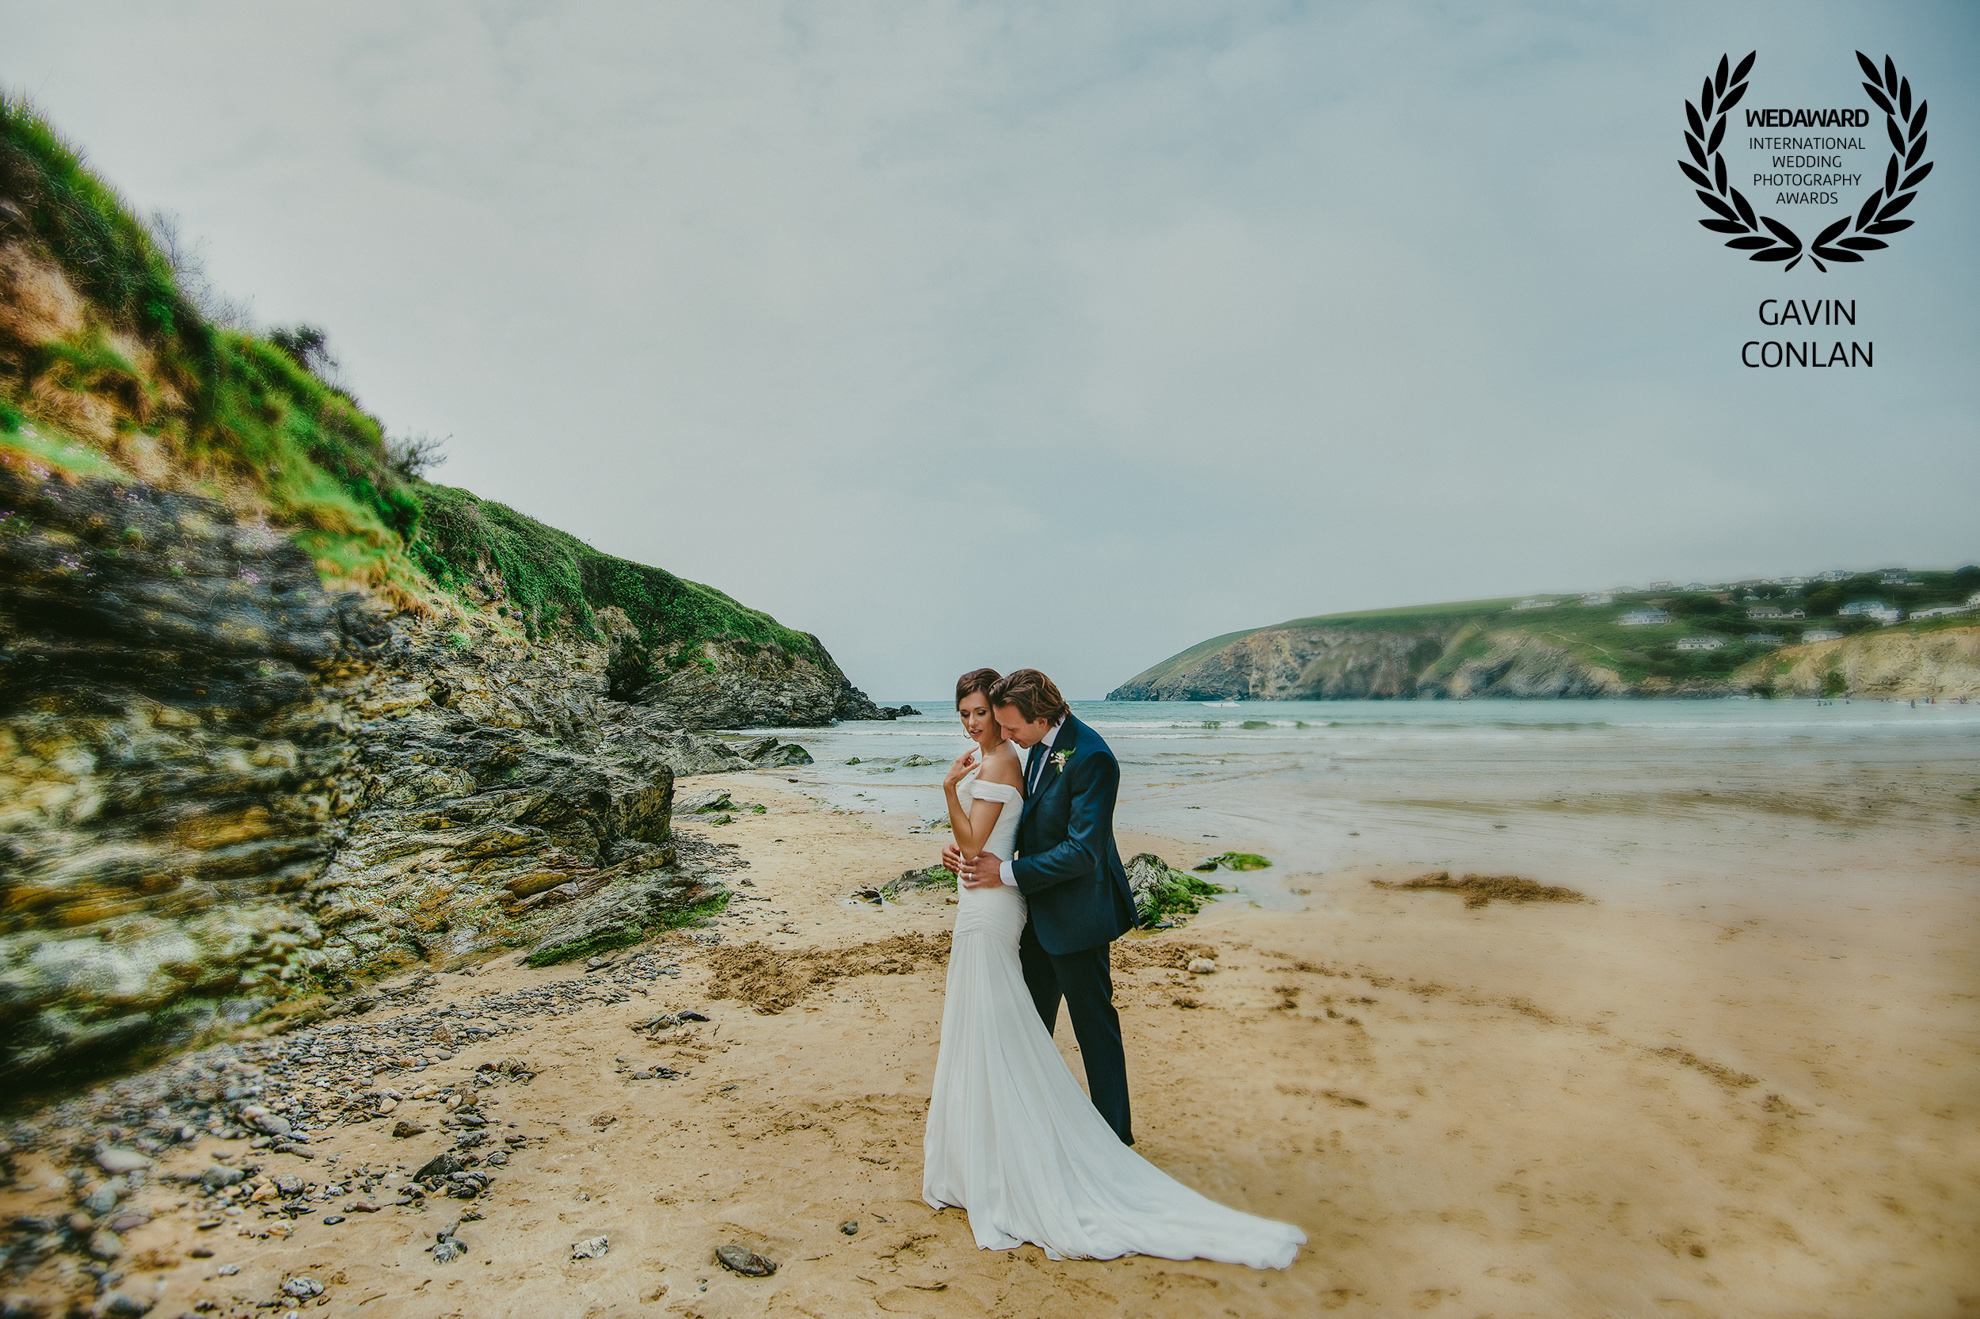 destination-wedding-portrait-mawgan-porth-beach-cornwall-gavin-conlan-photography-wedaward-02